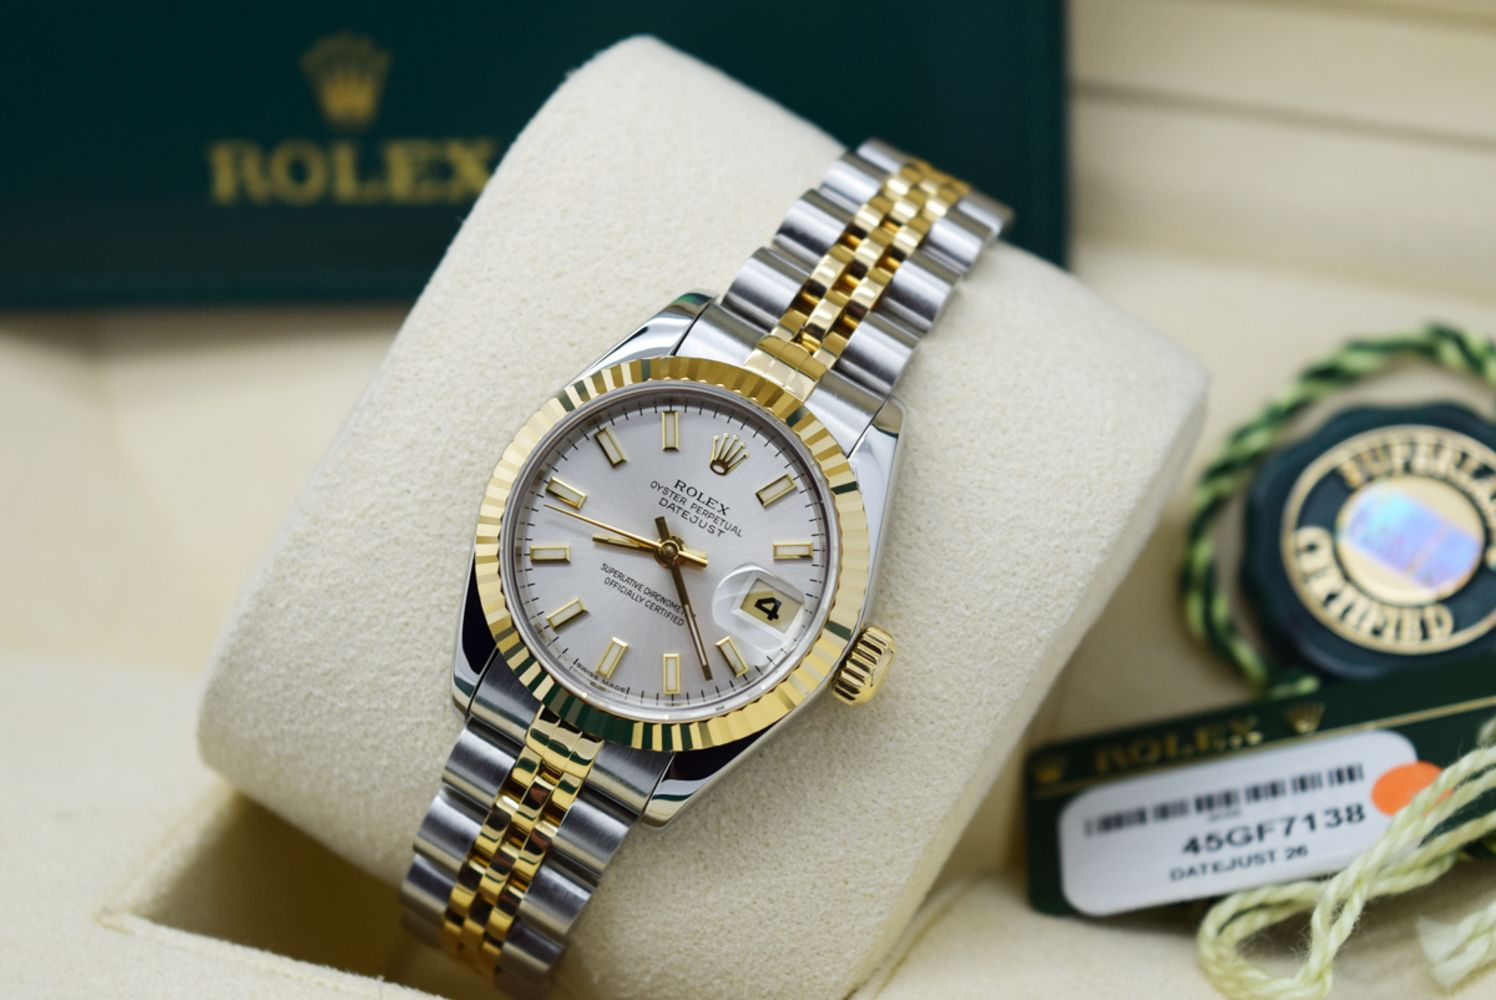 *** ENDING SOON *** SPEED AUCTION OF 100+ LUXURY WATCHES, JEWELLERY ETC - FREE REGISTRATION